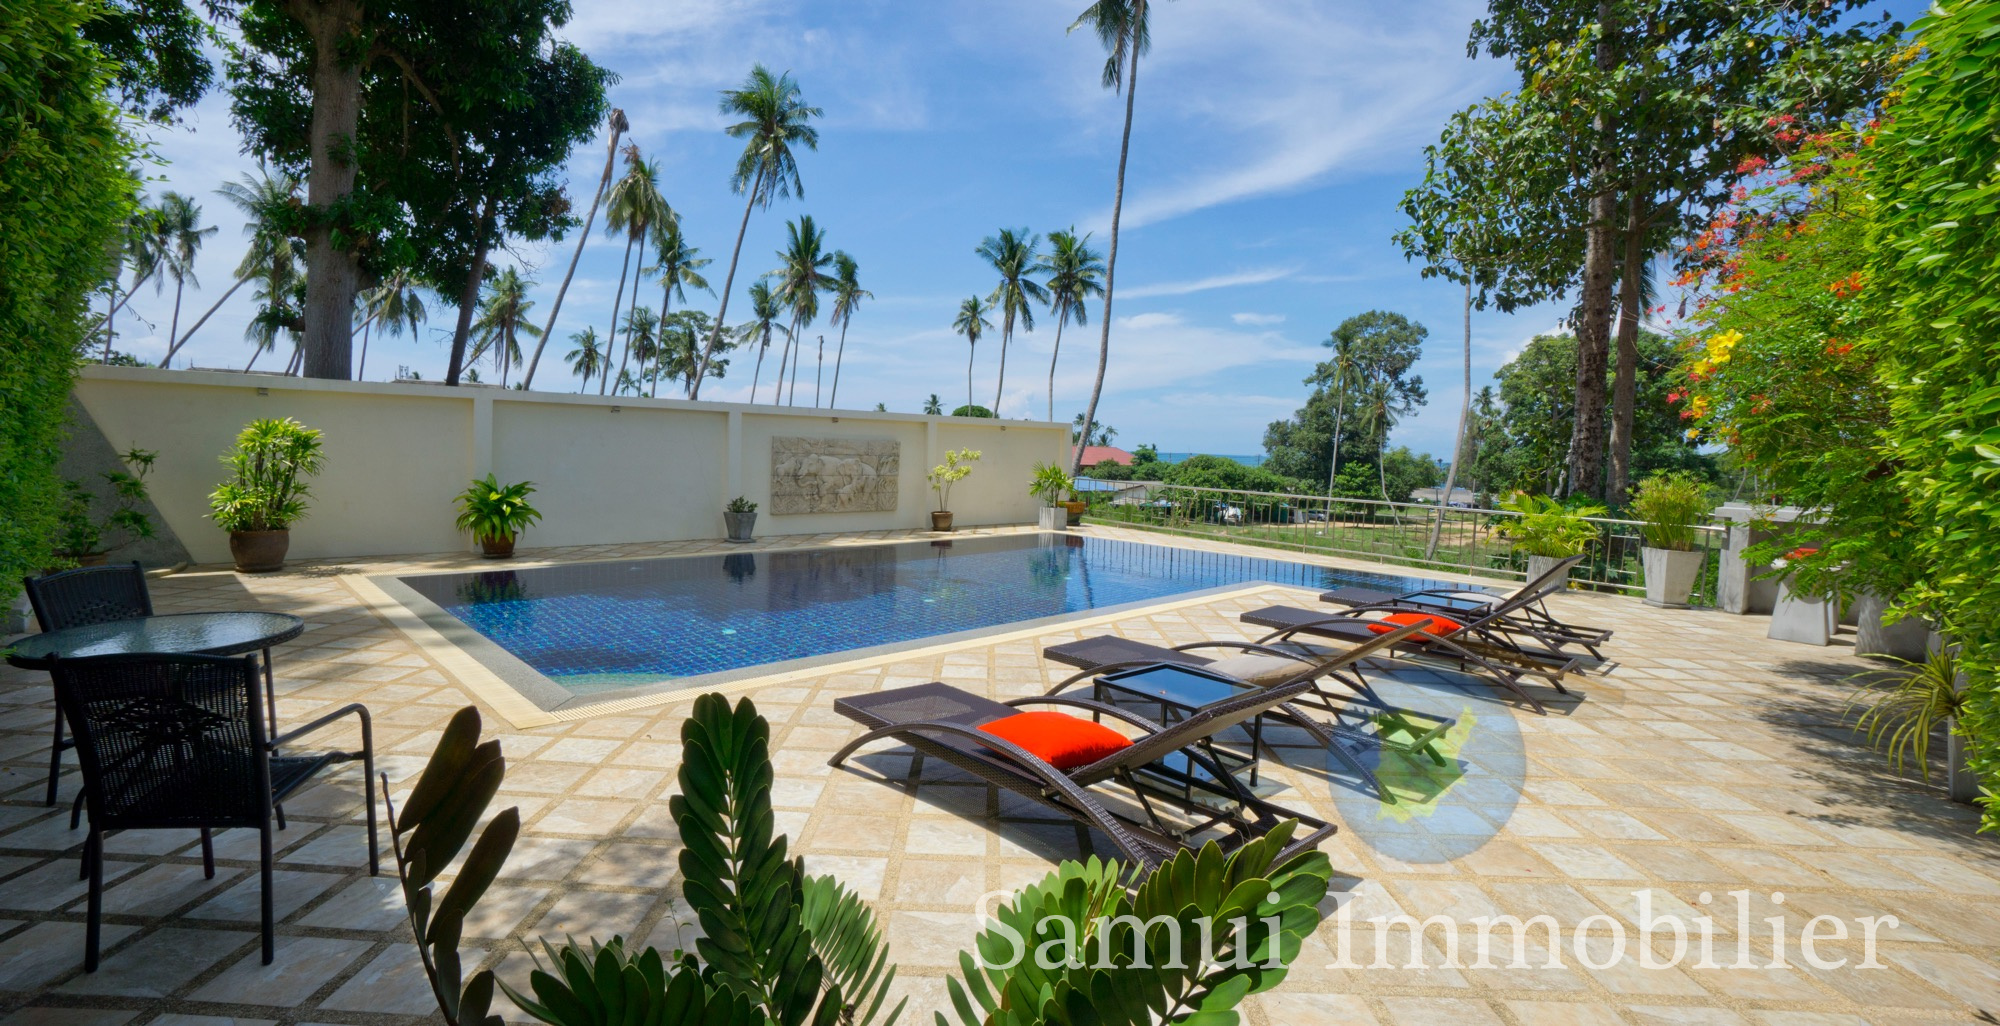 Villa 4 Bungalows For Sale 7 Bedrooms Lamai Koh